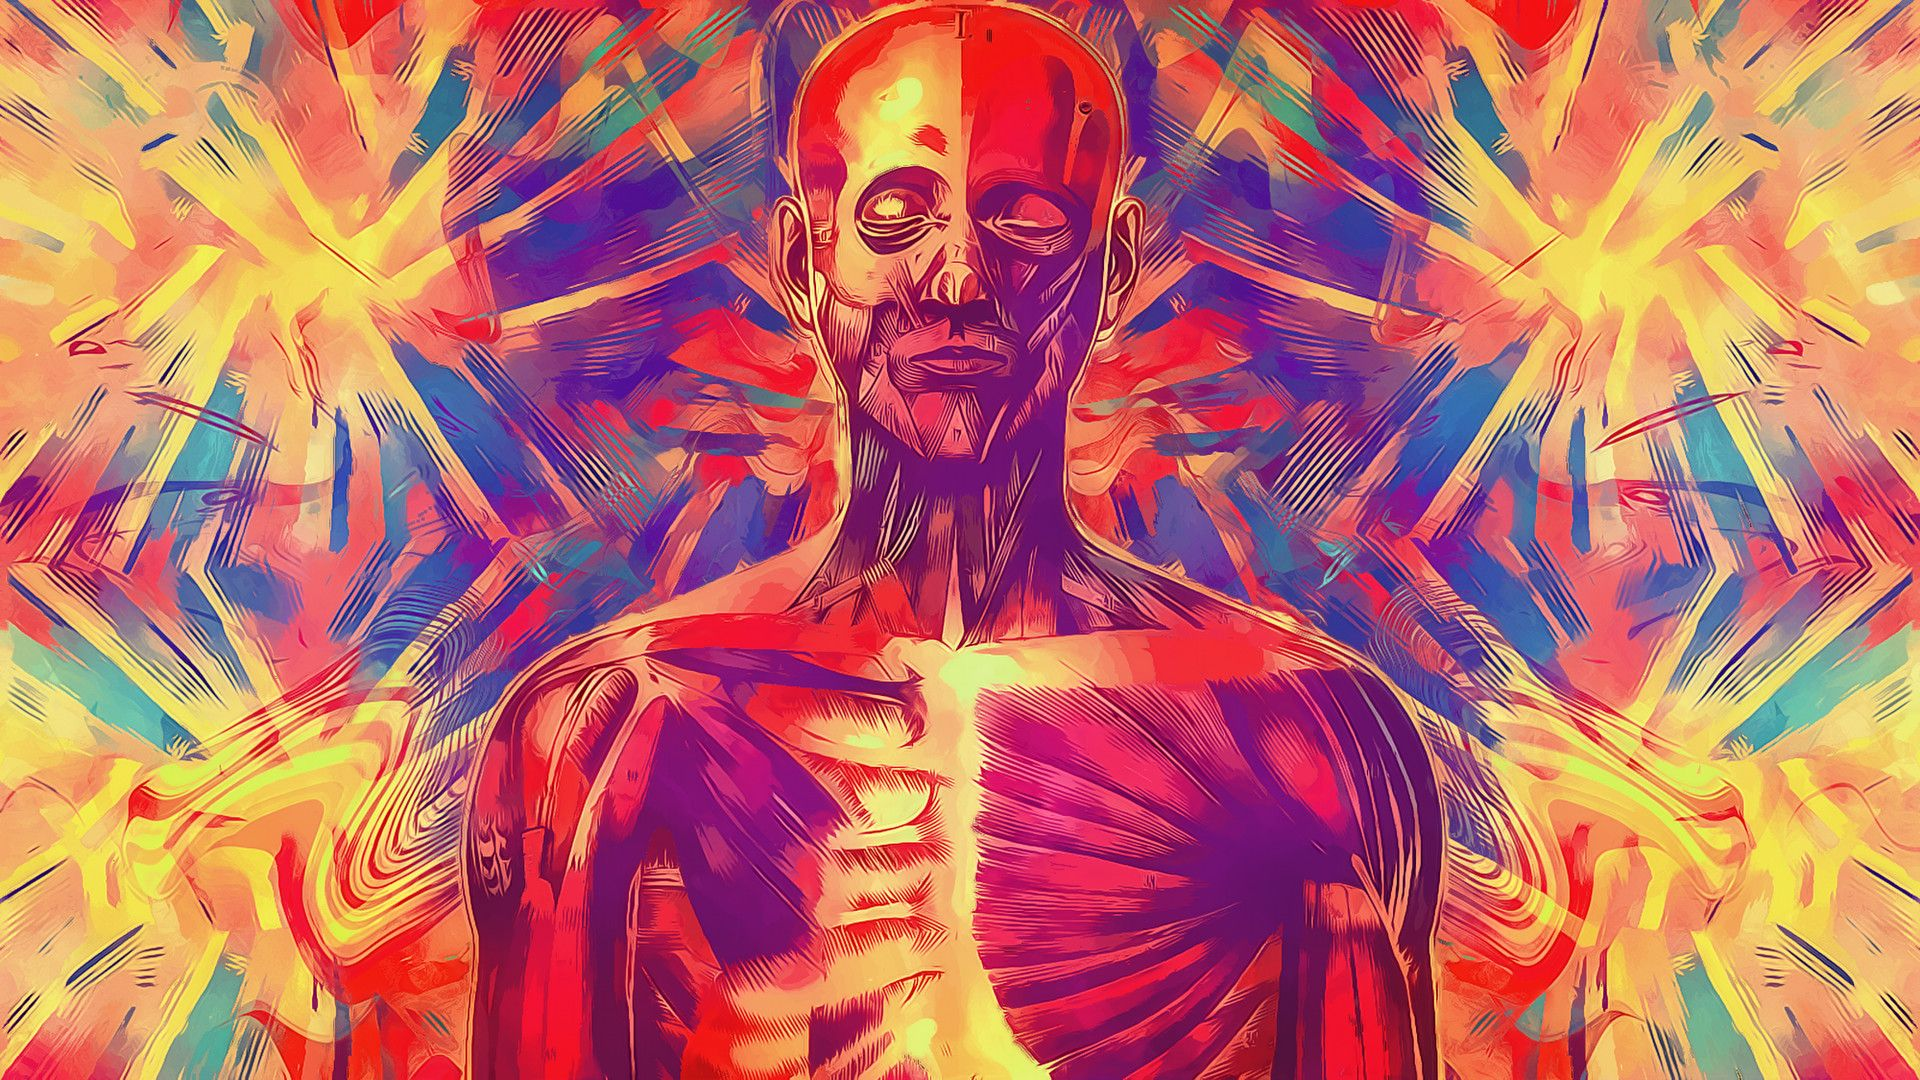 Wallpapers Psychedelic Hd